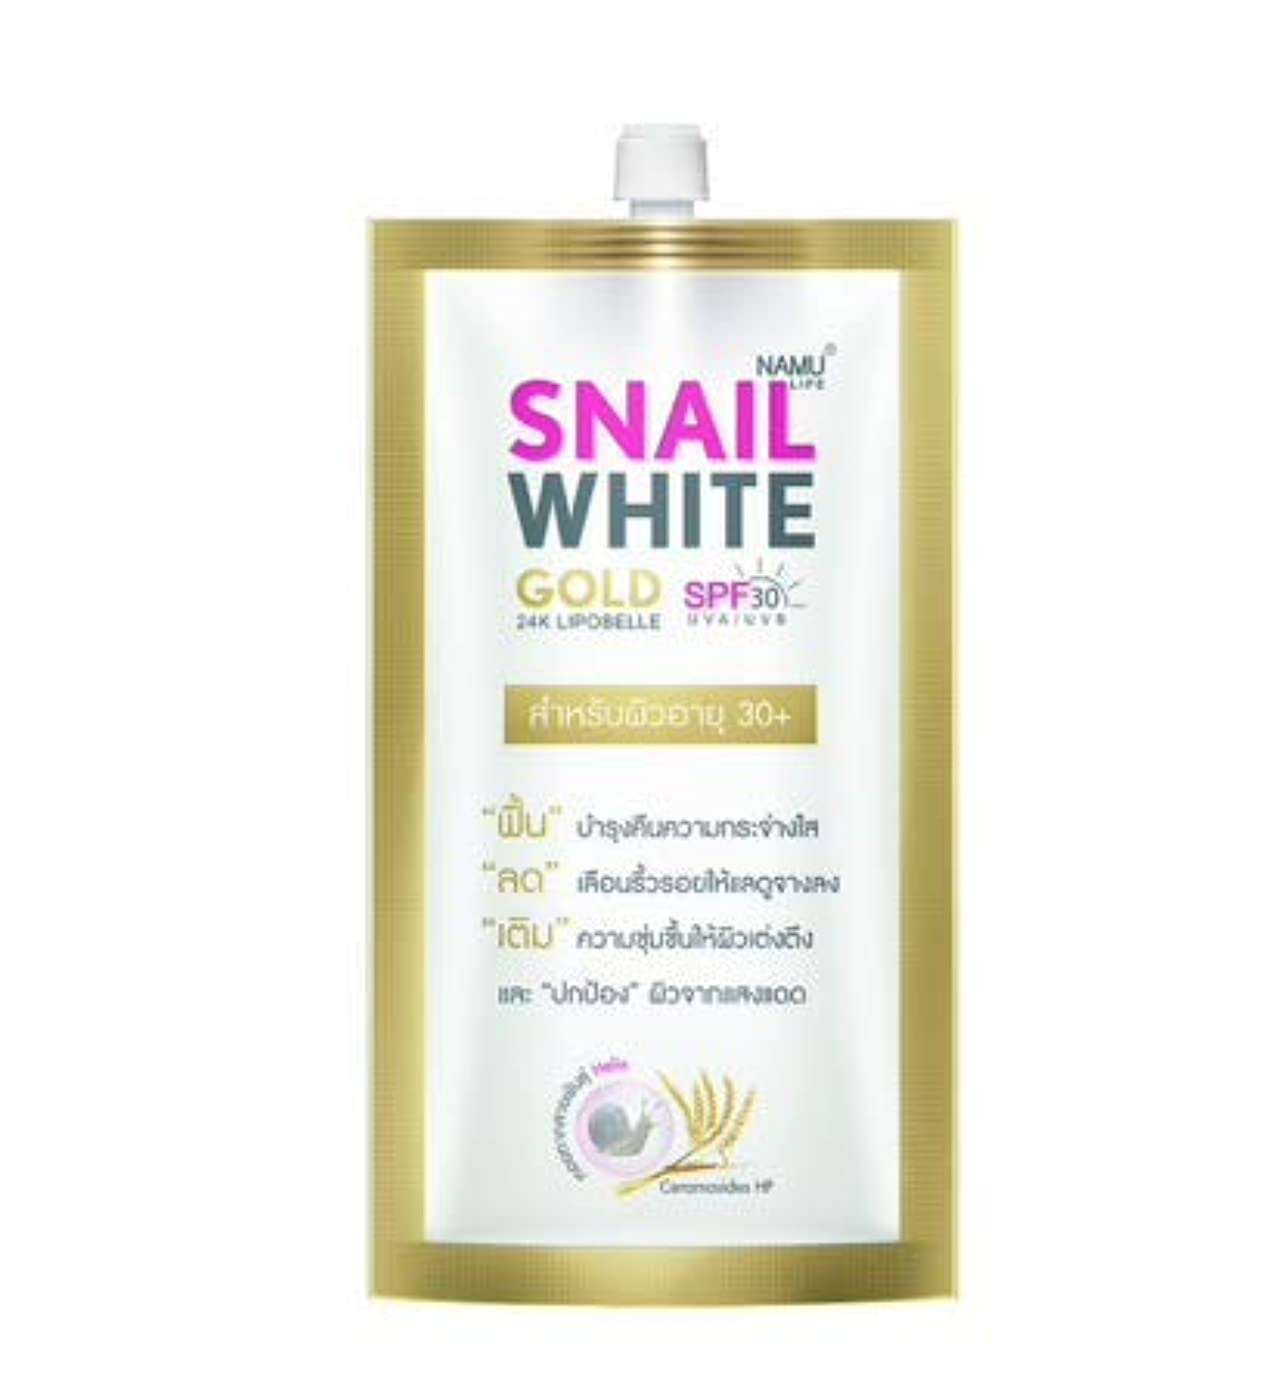 航空機土砂降り誰がSnail White Gold SPF 30 / PA +++ Size 7 ml.